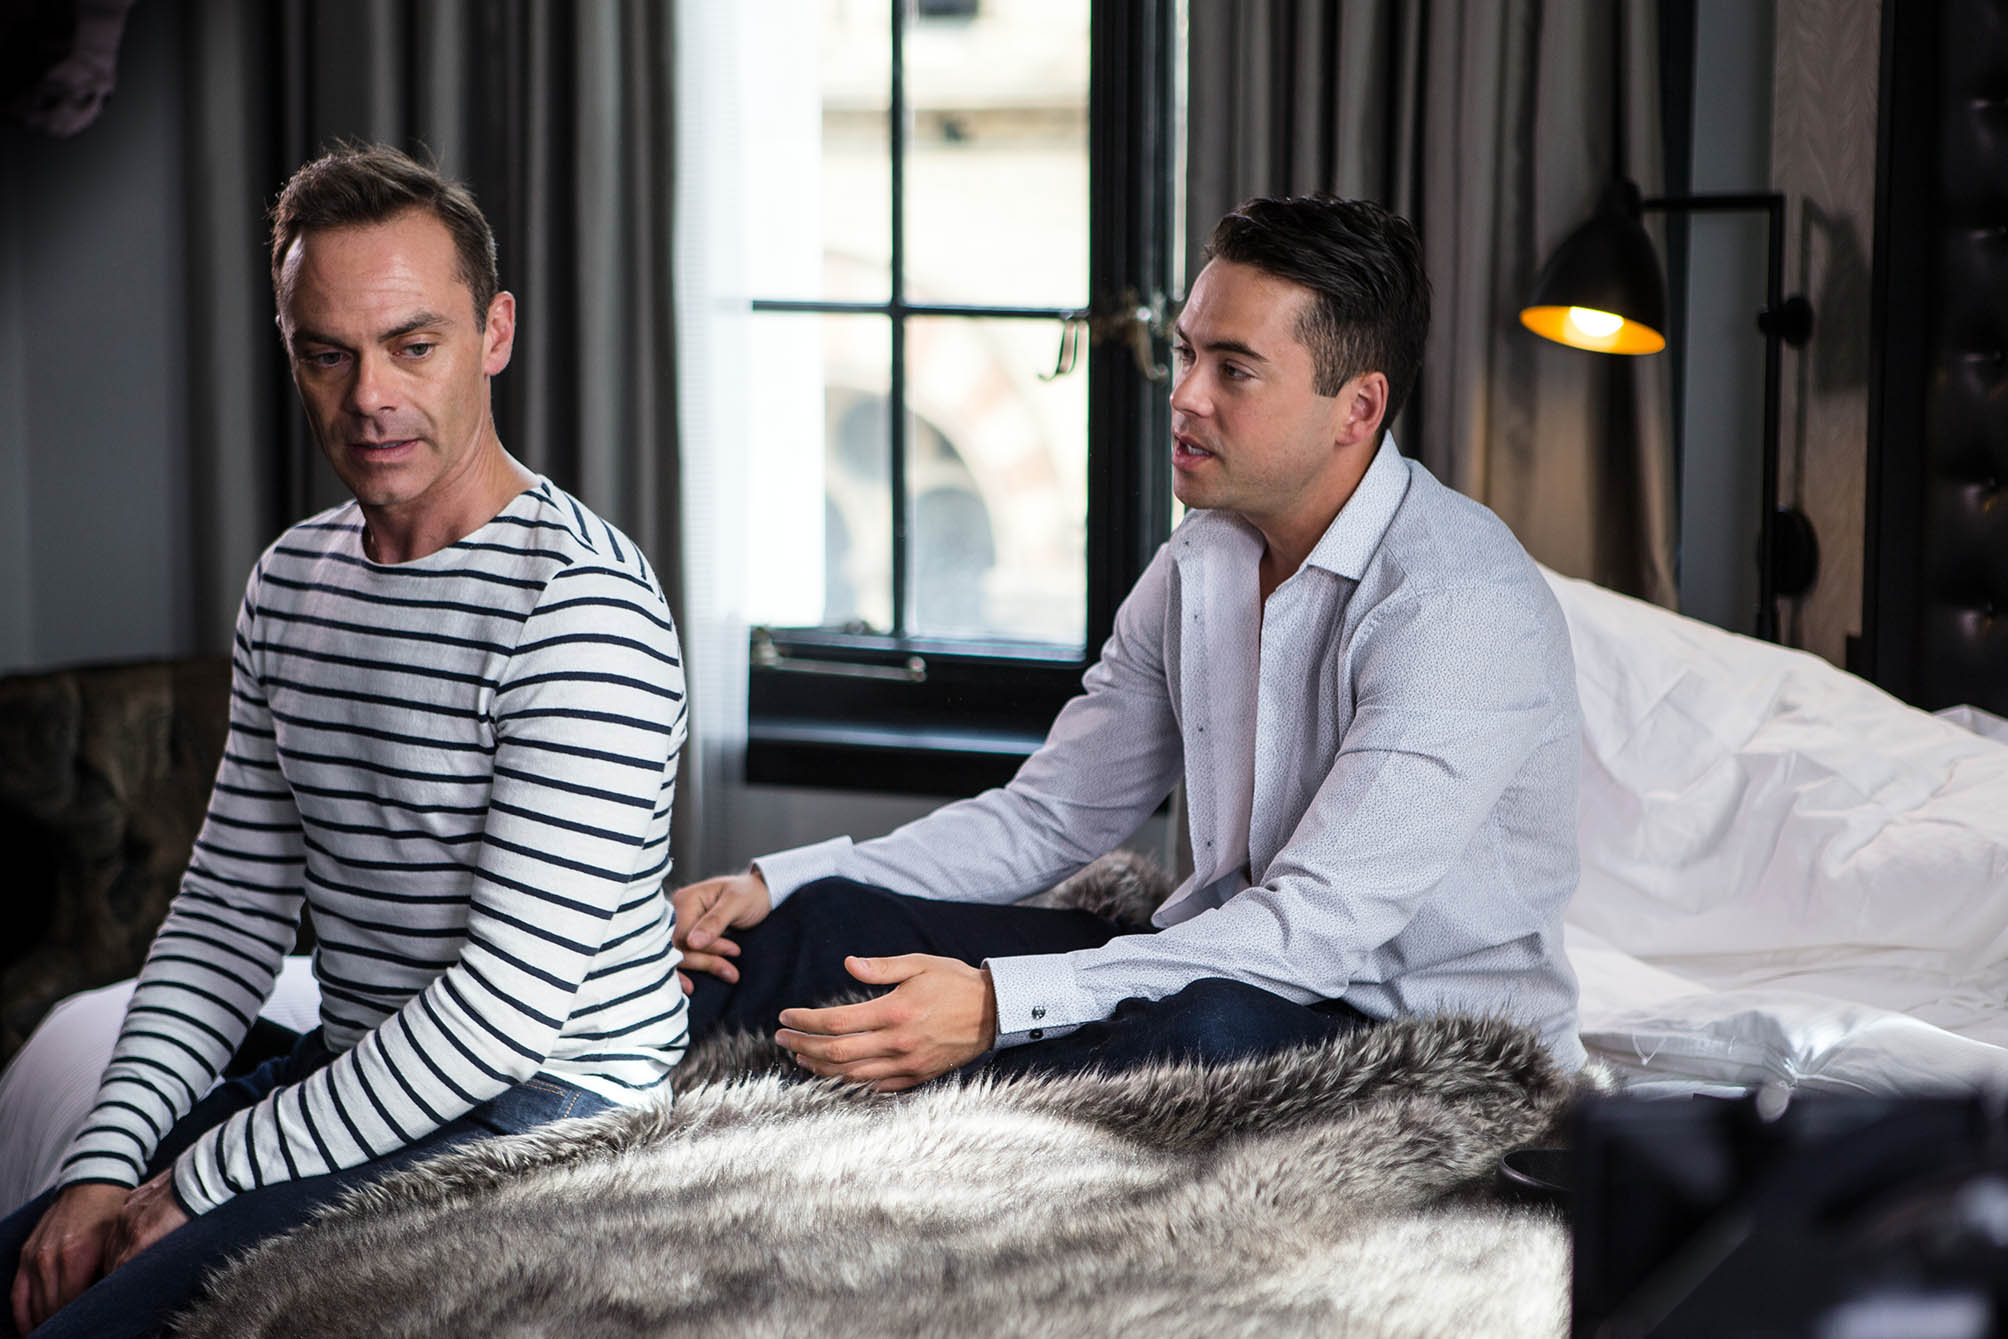 FROM ITV STRICT EMBARGO - NO USE BEFORE TUESDAY 30 AUGUST 2016 Coronation Street - Ep 8984 Monday 5 September 2016 - 2nd Ep Having arrived at the hotel, Todd Grimshaw [BRUNO LANGLEY] reveals he's booked them a double room. To Todd's delight, Billy Mayhew [DANIEL BROCKLEBANK] suggests they head straight upstairs. As Todd and Billy romp on the bed, Todd makes an ill-judged joke about Billy's religion. Billy takes offence and quickly backs off. Deeply frustrated, Todd tells Billy a relationship without sex isn't a proper relationship and storms out. Picture contact: david.crook@itv.com on 0161 952 6214 Photographer - Mark Bruce This photograph is (C) ITV Plc and can only be reproduced for editorial purposes directly in connection with the programme or event mentioned above, or ITV plc. Once made available by ITV plc Picture Desk, this photograph can be reproduced once only up until the transmission [TX] date and no reproduction fee will be charged. Any subsequent usage may incur a fee. This photograph must not be manipulated [excluding basic cropping] in a manner which alters the visual appearance of the person photographed deemed detrimental or inappropriate by ITV plc Picture Desk. This photograph must not be syndicated to any other company, publication or website, or permanently archived, without the express written permission of ITV Plc Picture Desk. Full Terms and conditions are available on the website www.itvpictures.com